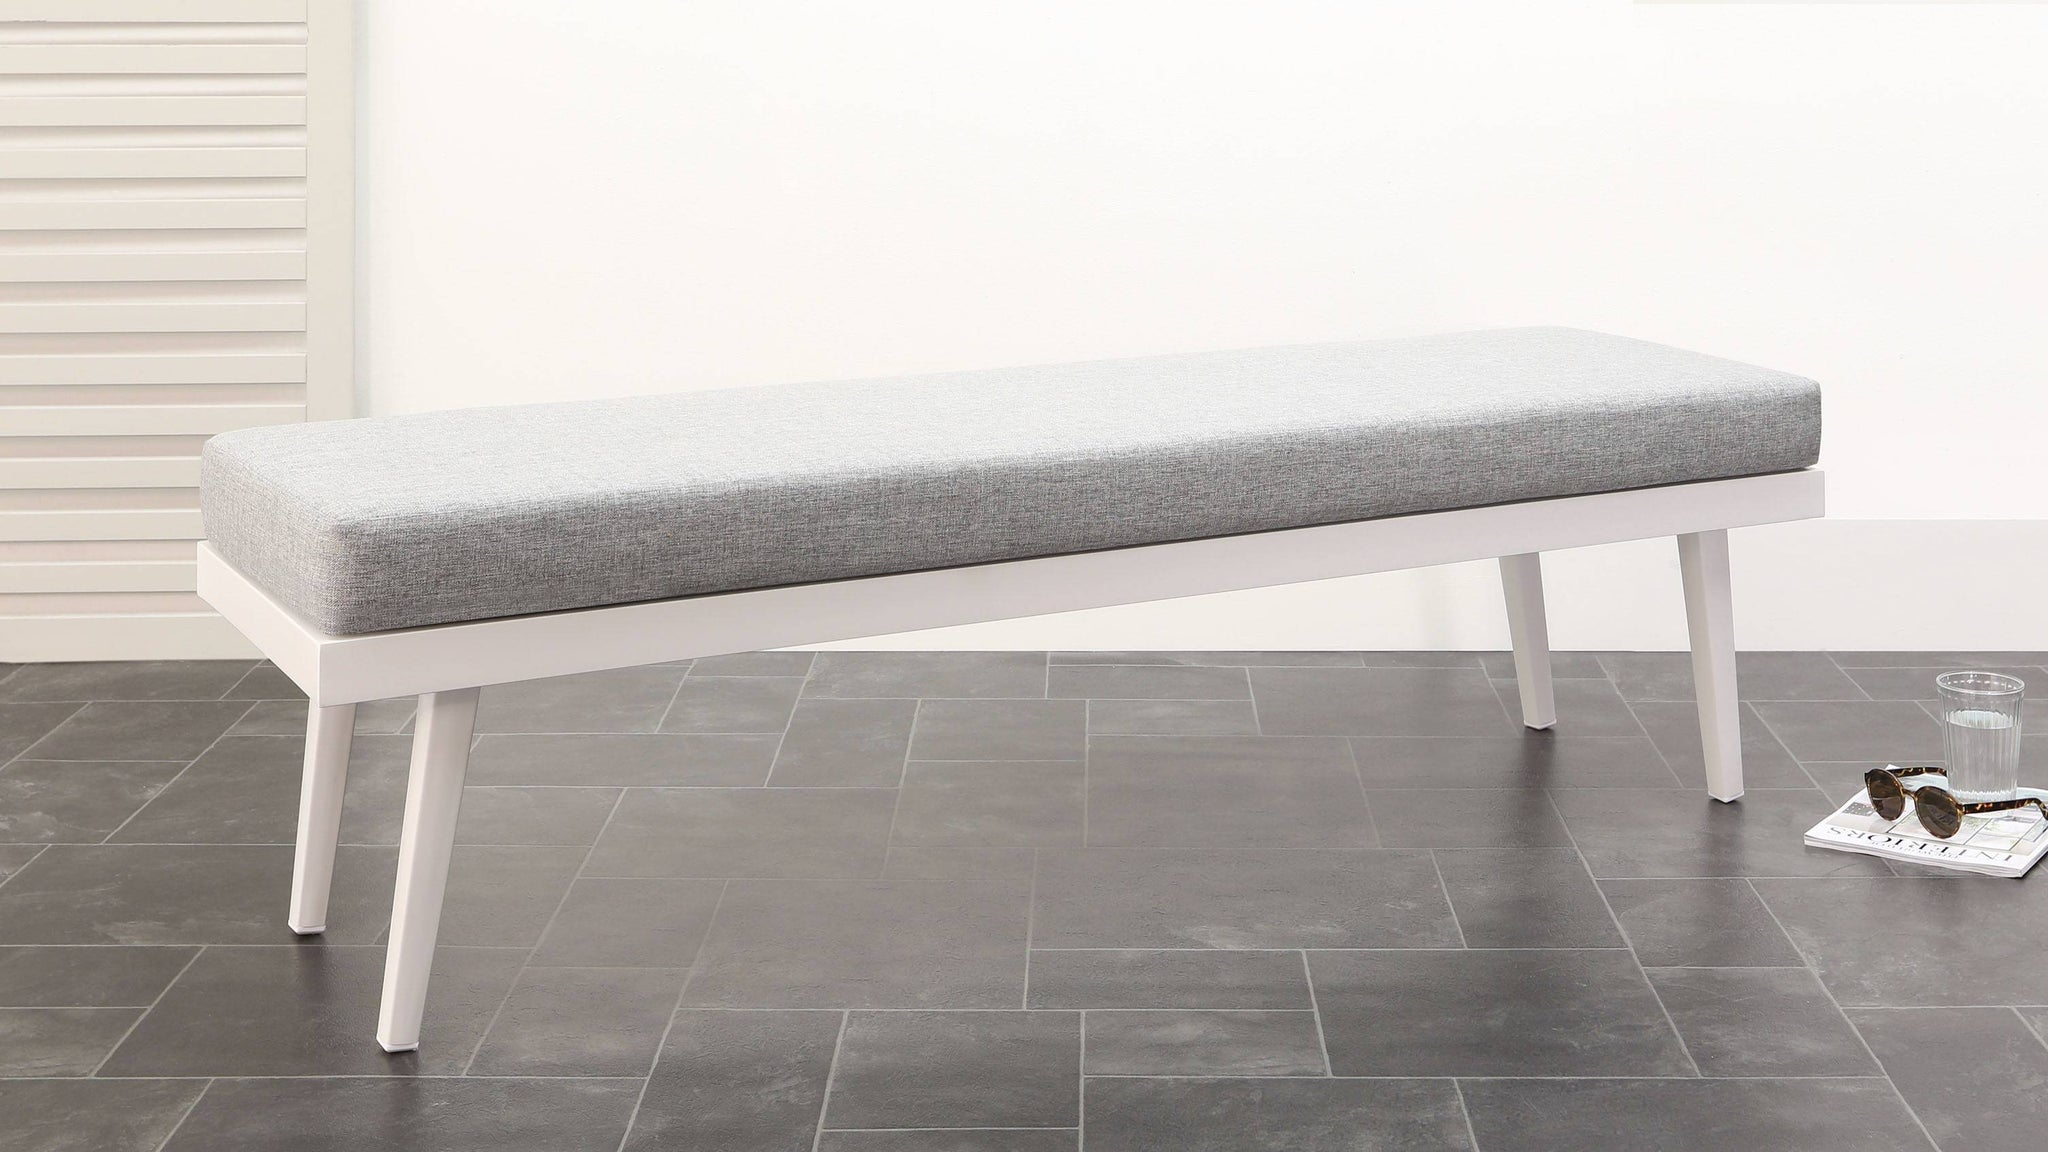 Large white and light grey outdoor bench